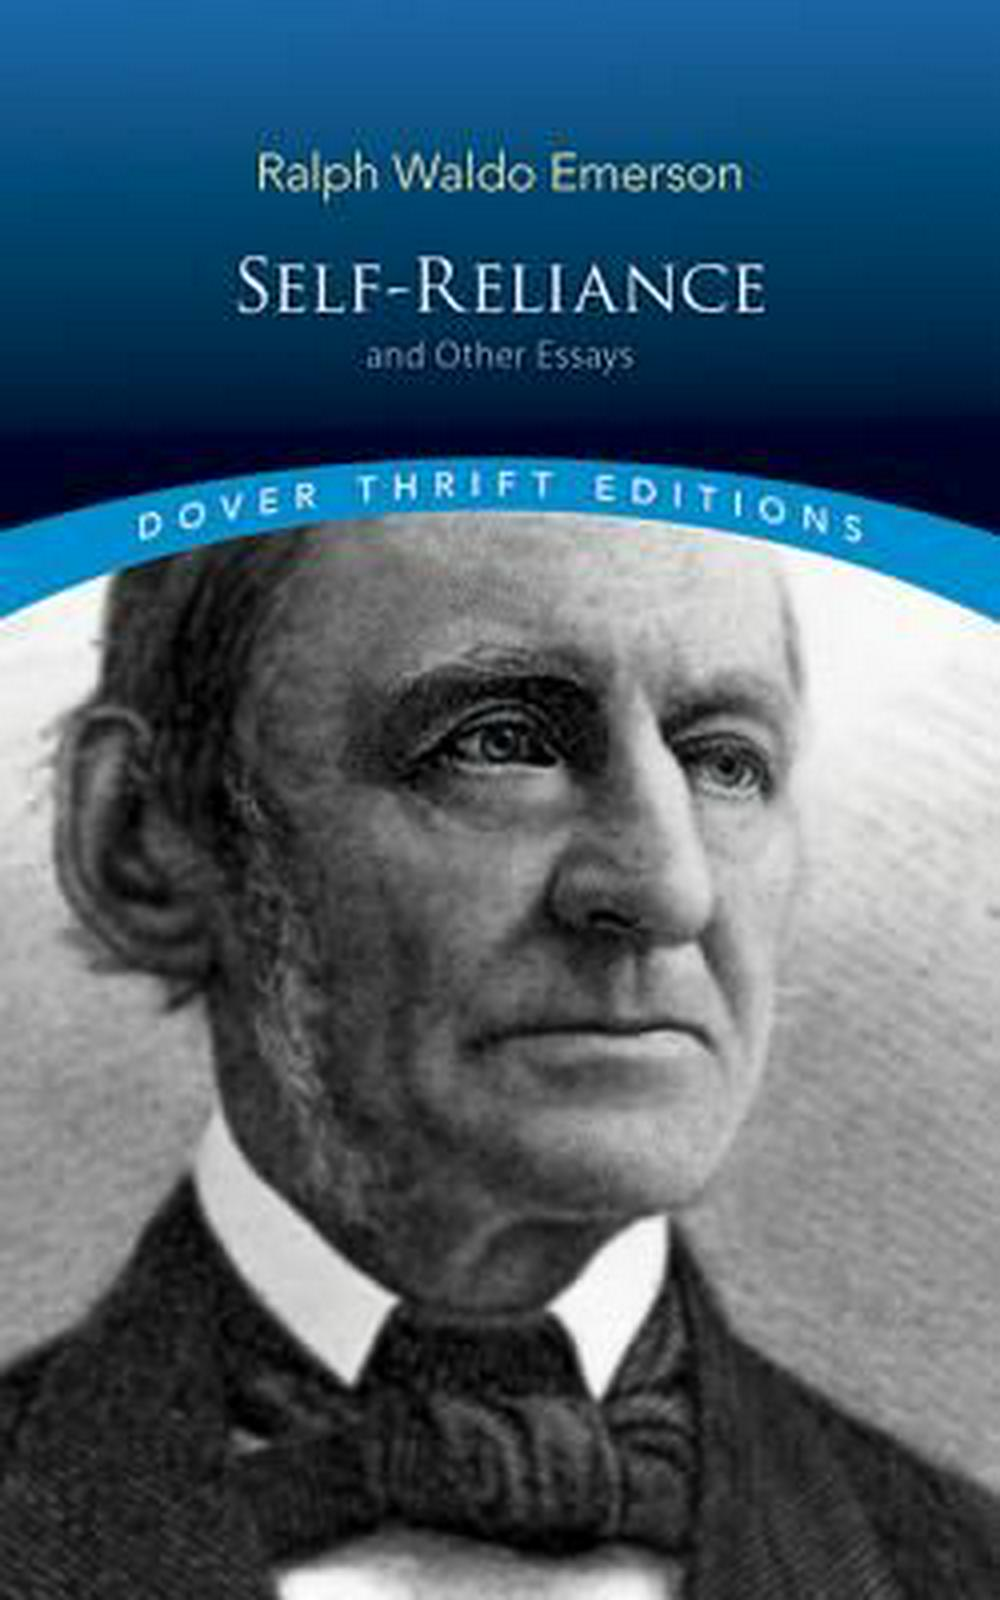 008 Essay Example 9780486277905r5c44ea15d6529 Self Reliance And Other Formidable Essays Ekşi Self-reliance (dover Thrift Editions) Pdf Epub Full